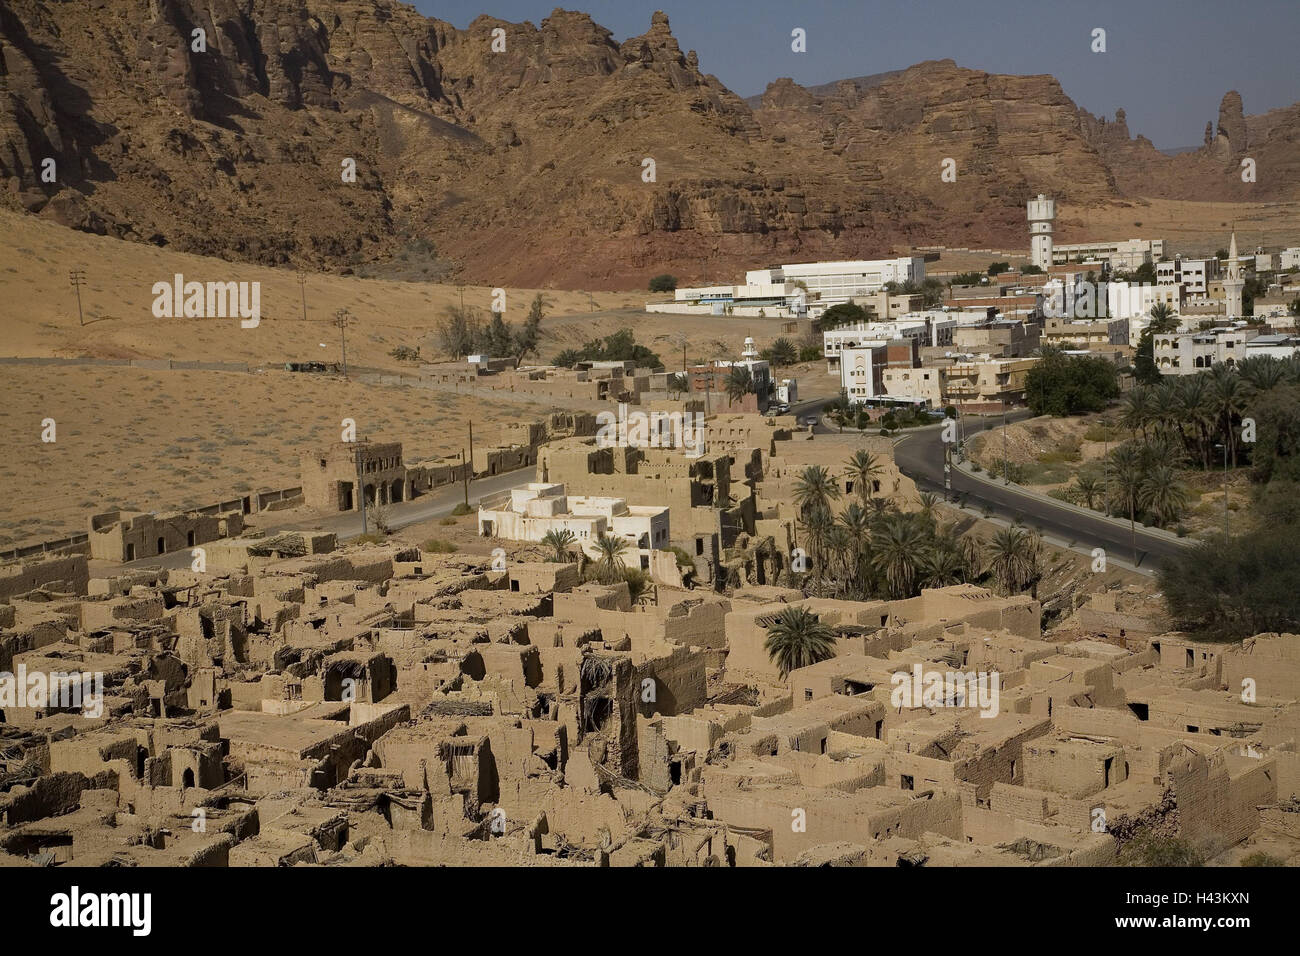 Saudi Arabia, Al-Ula, town view, al-Madina, Old Town, provincial town, mucky setting, mucky houses, houses, buildings, - Stock Image